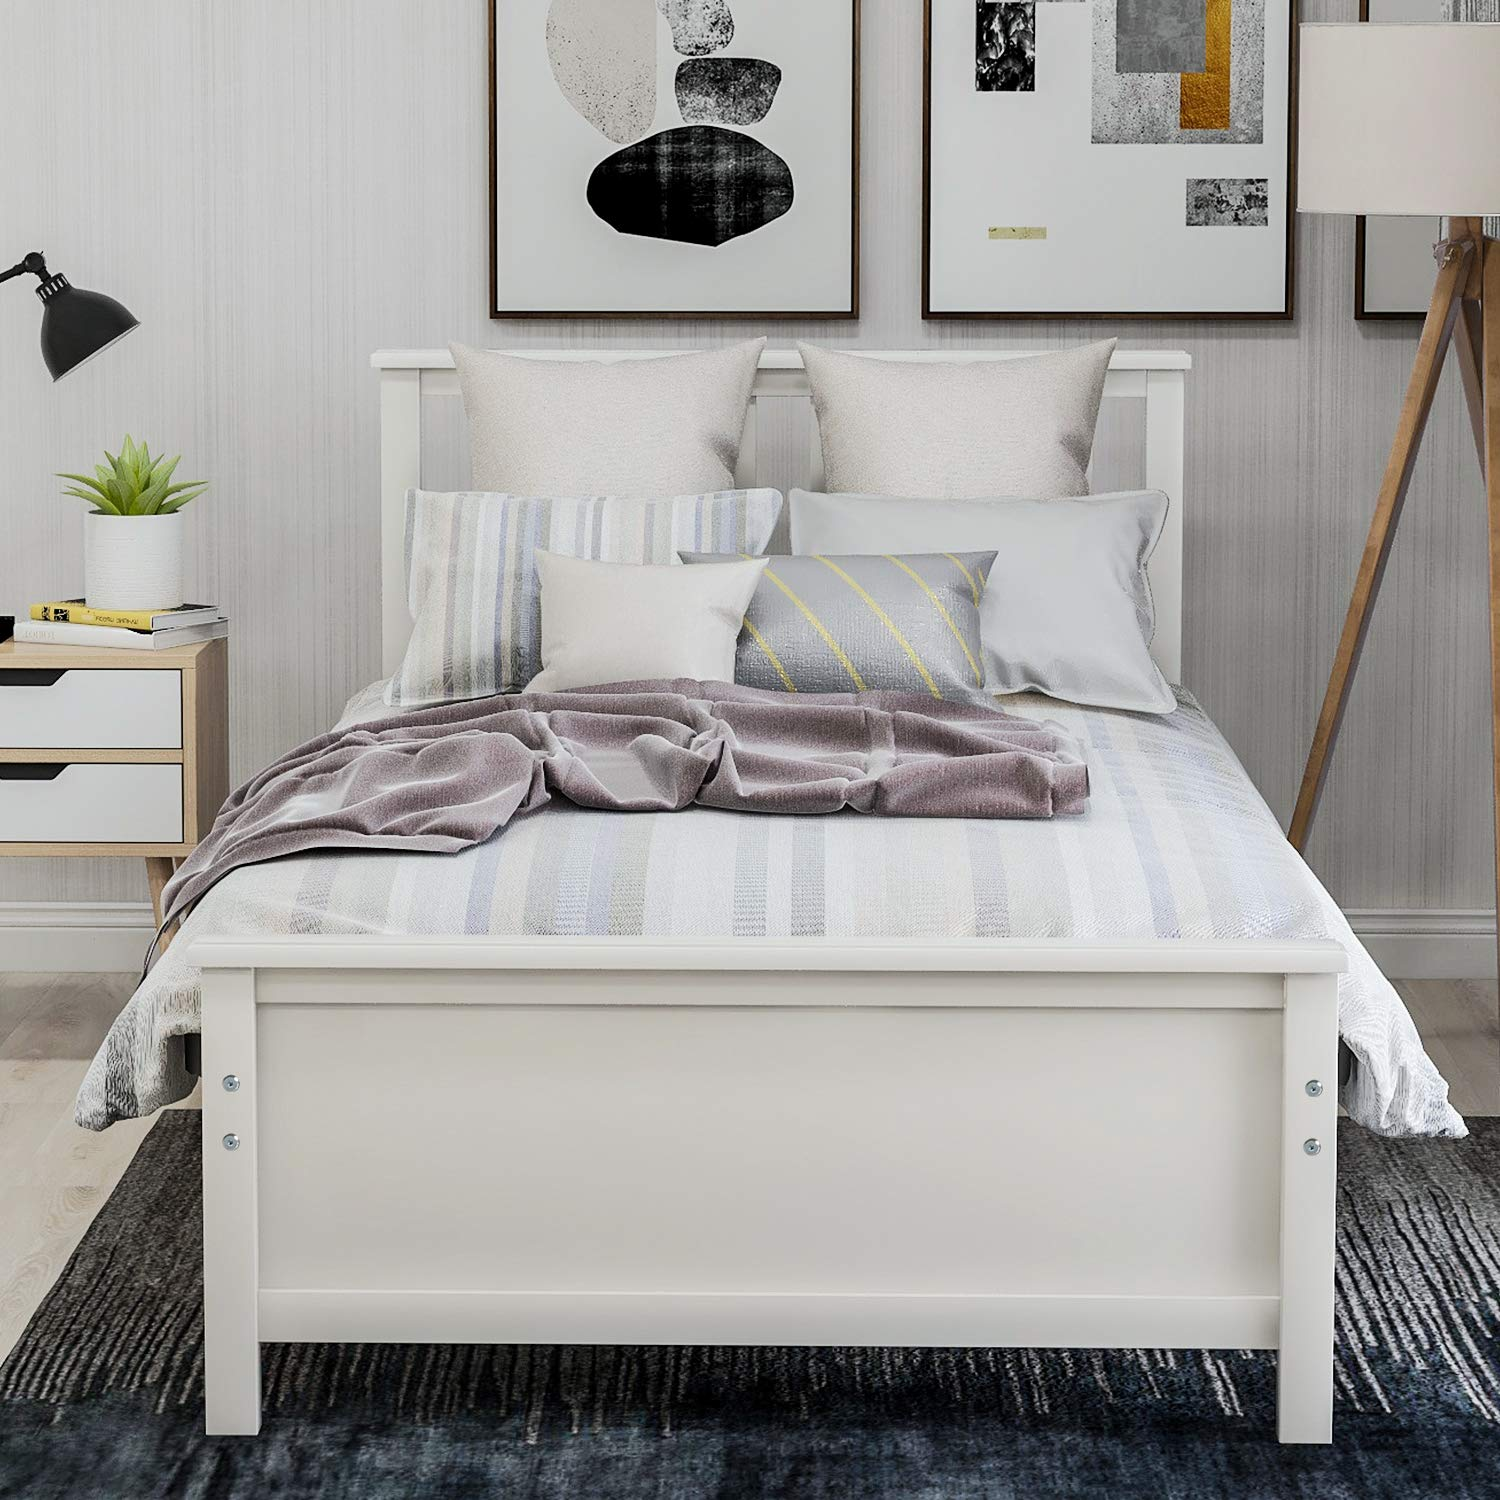 Hooseng Twin Daybed with Trundle and 3 Storage Drawers Wood Platform Frame with Headboard Footboard Kids Bed, White 1